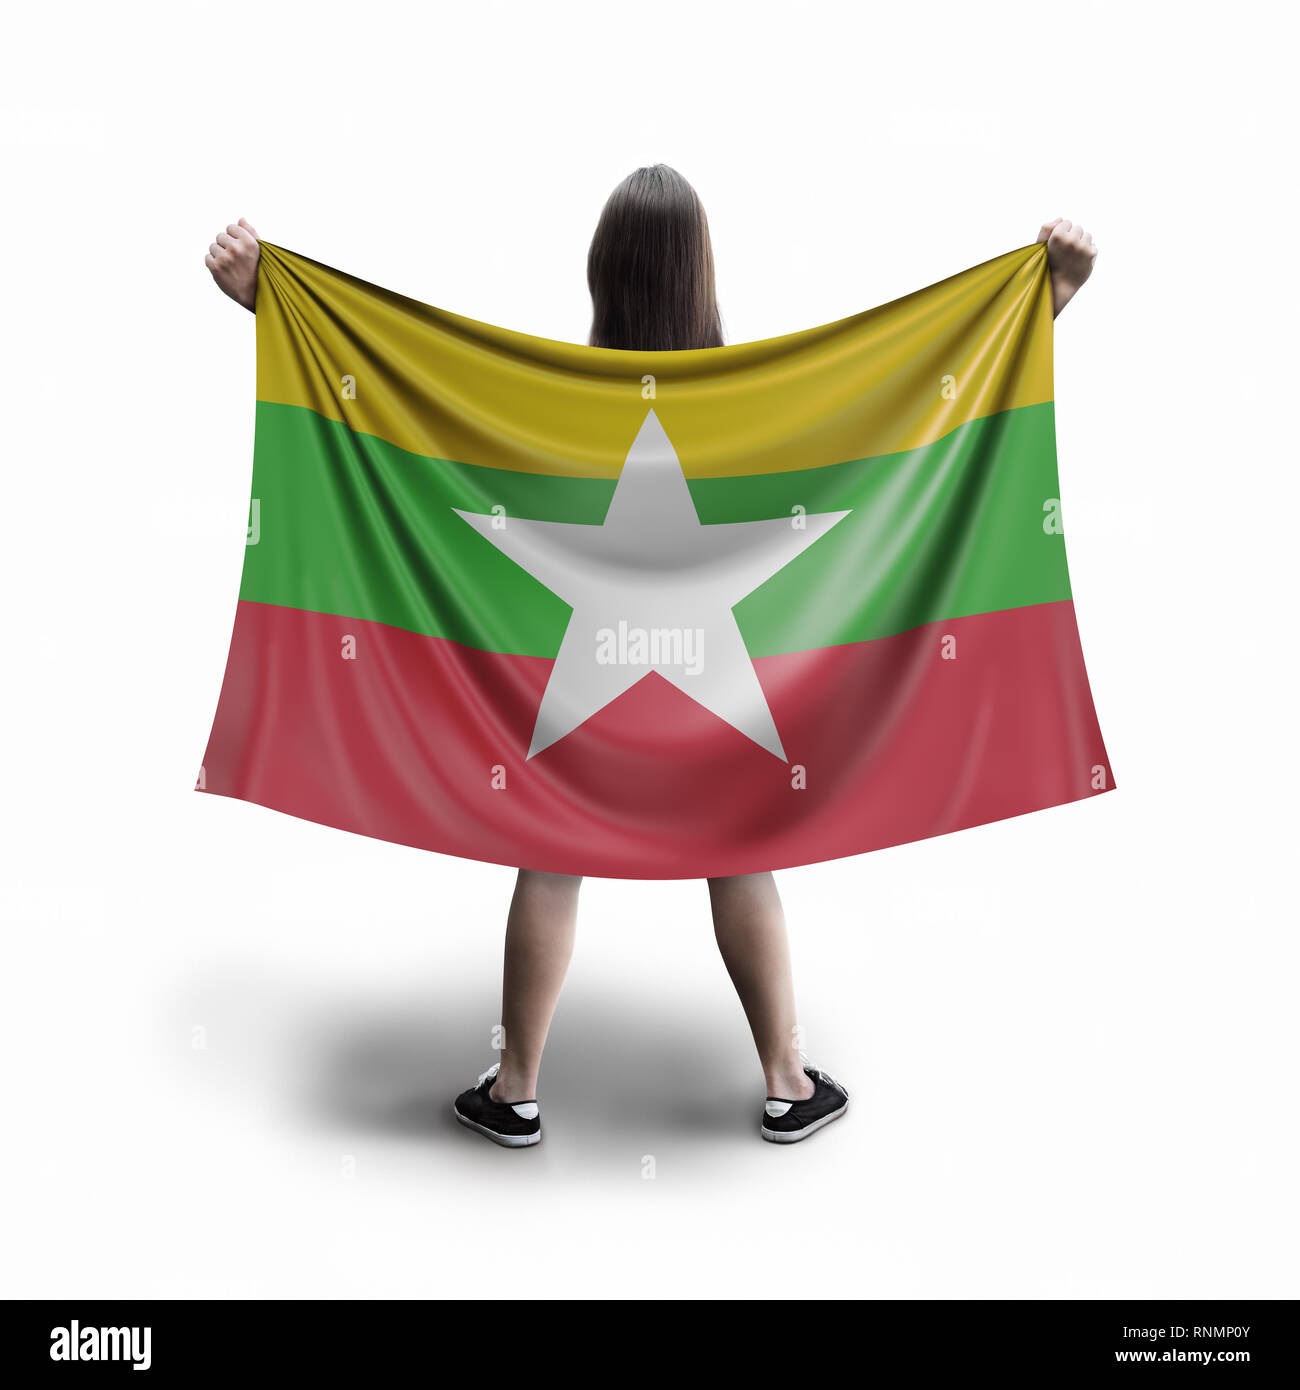 Women and flag - Stock Image